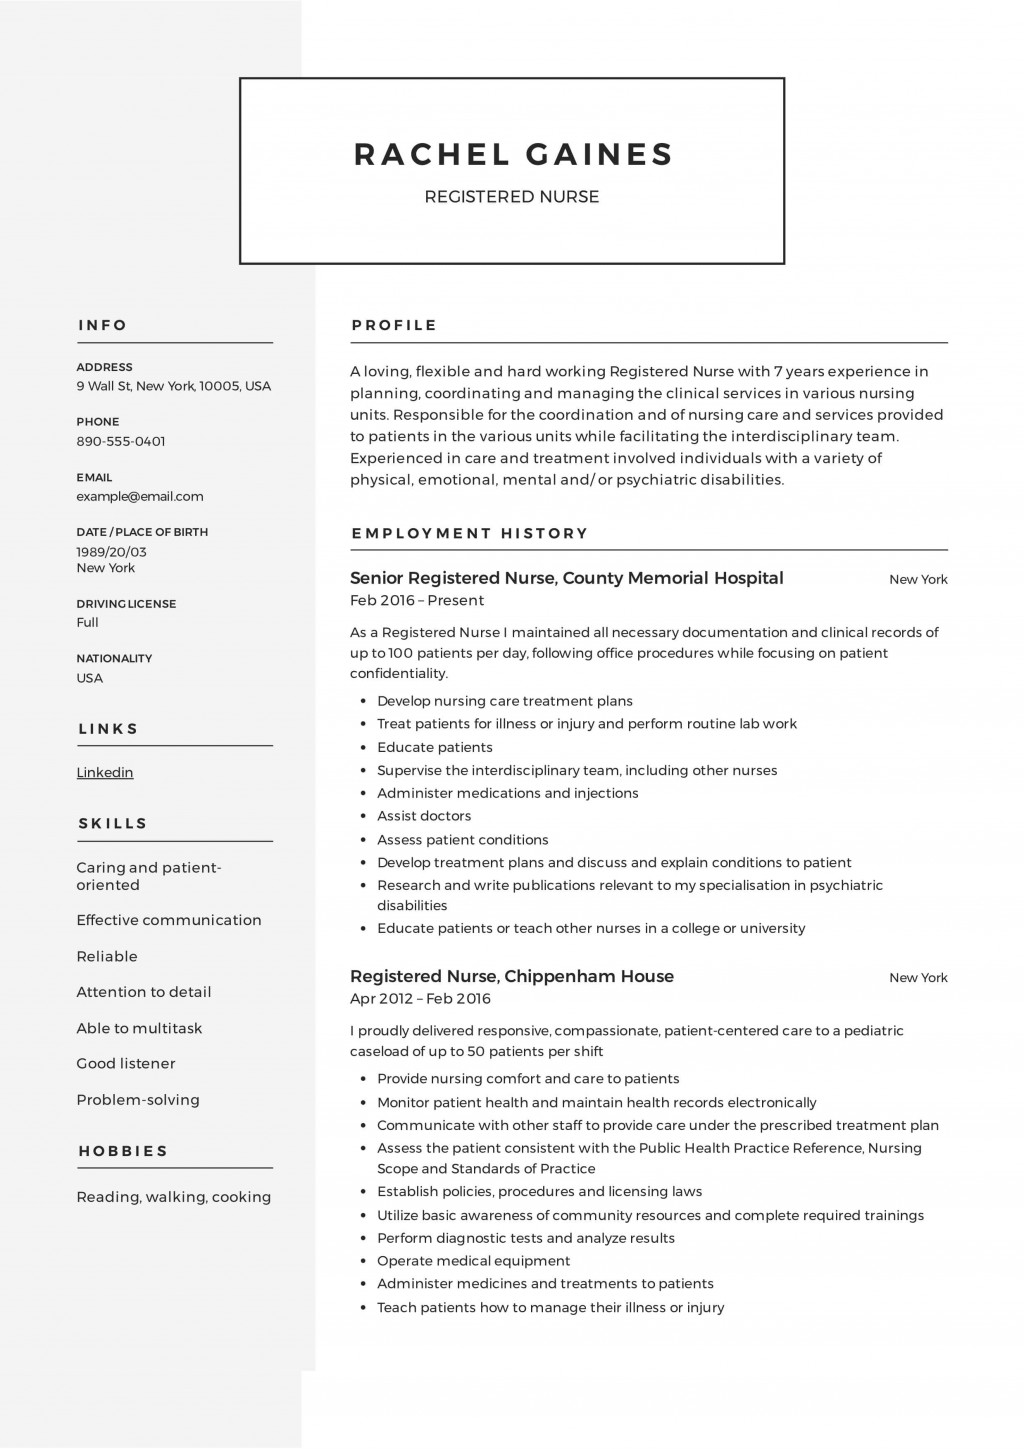 007 Breathtaking Resume Template For Nurse High Def  Sample Nursing Assistant With No Experience Rn' FreeLarge